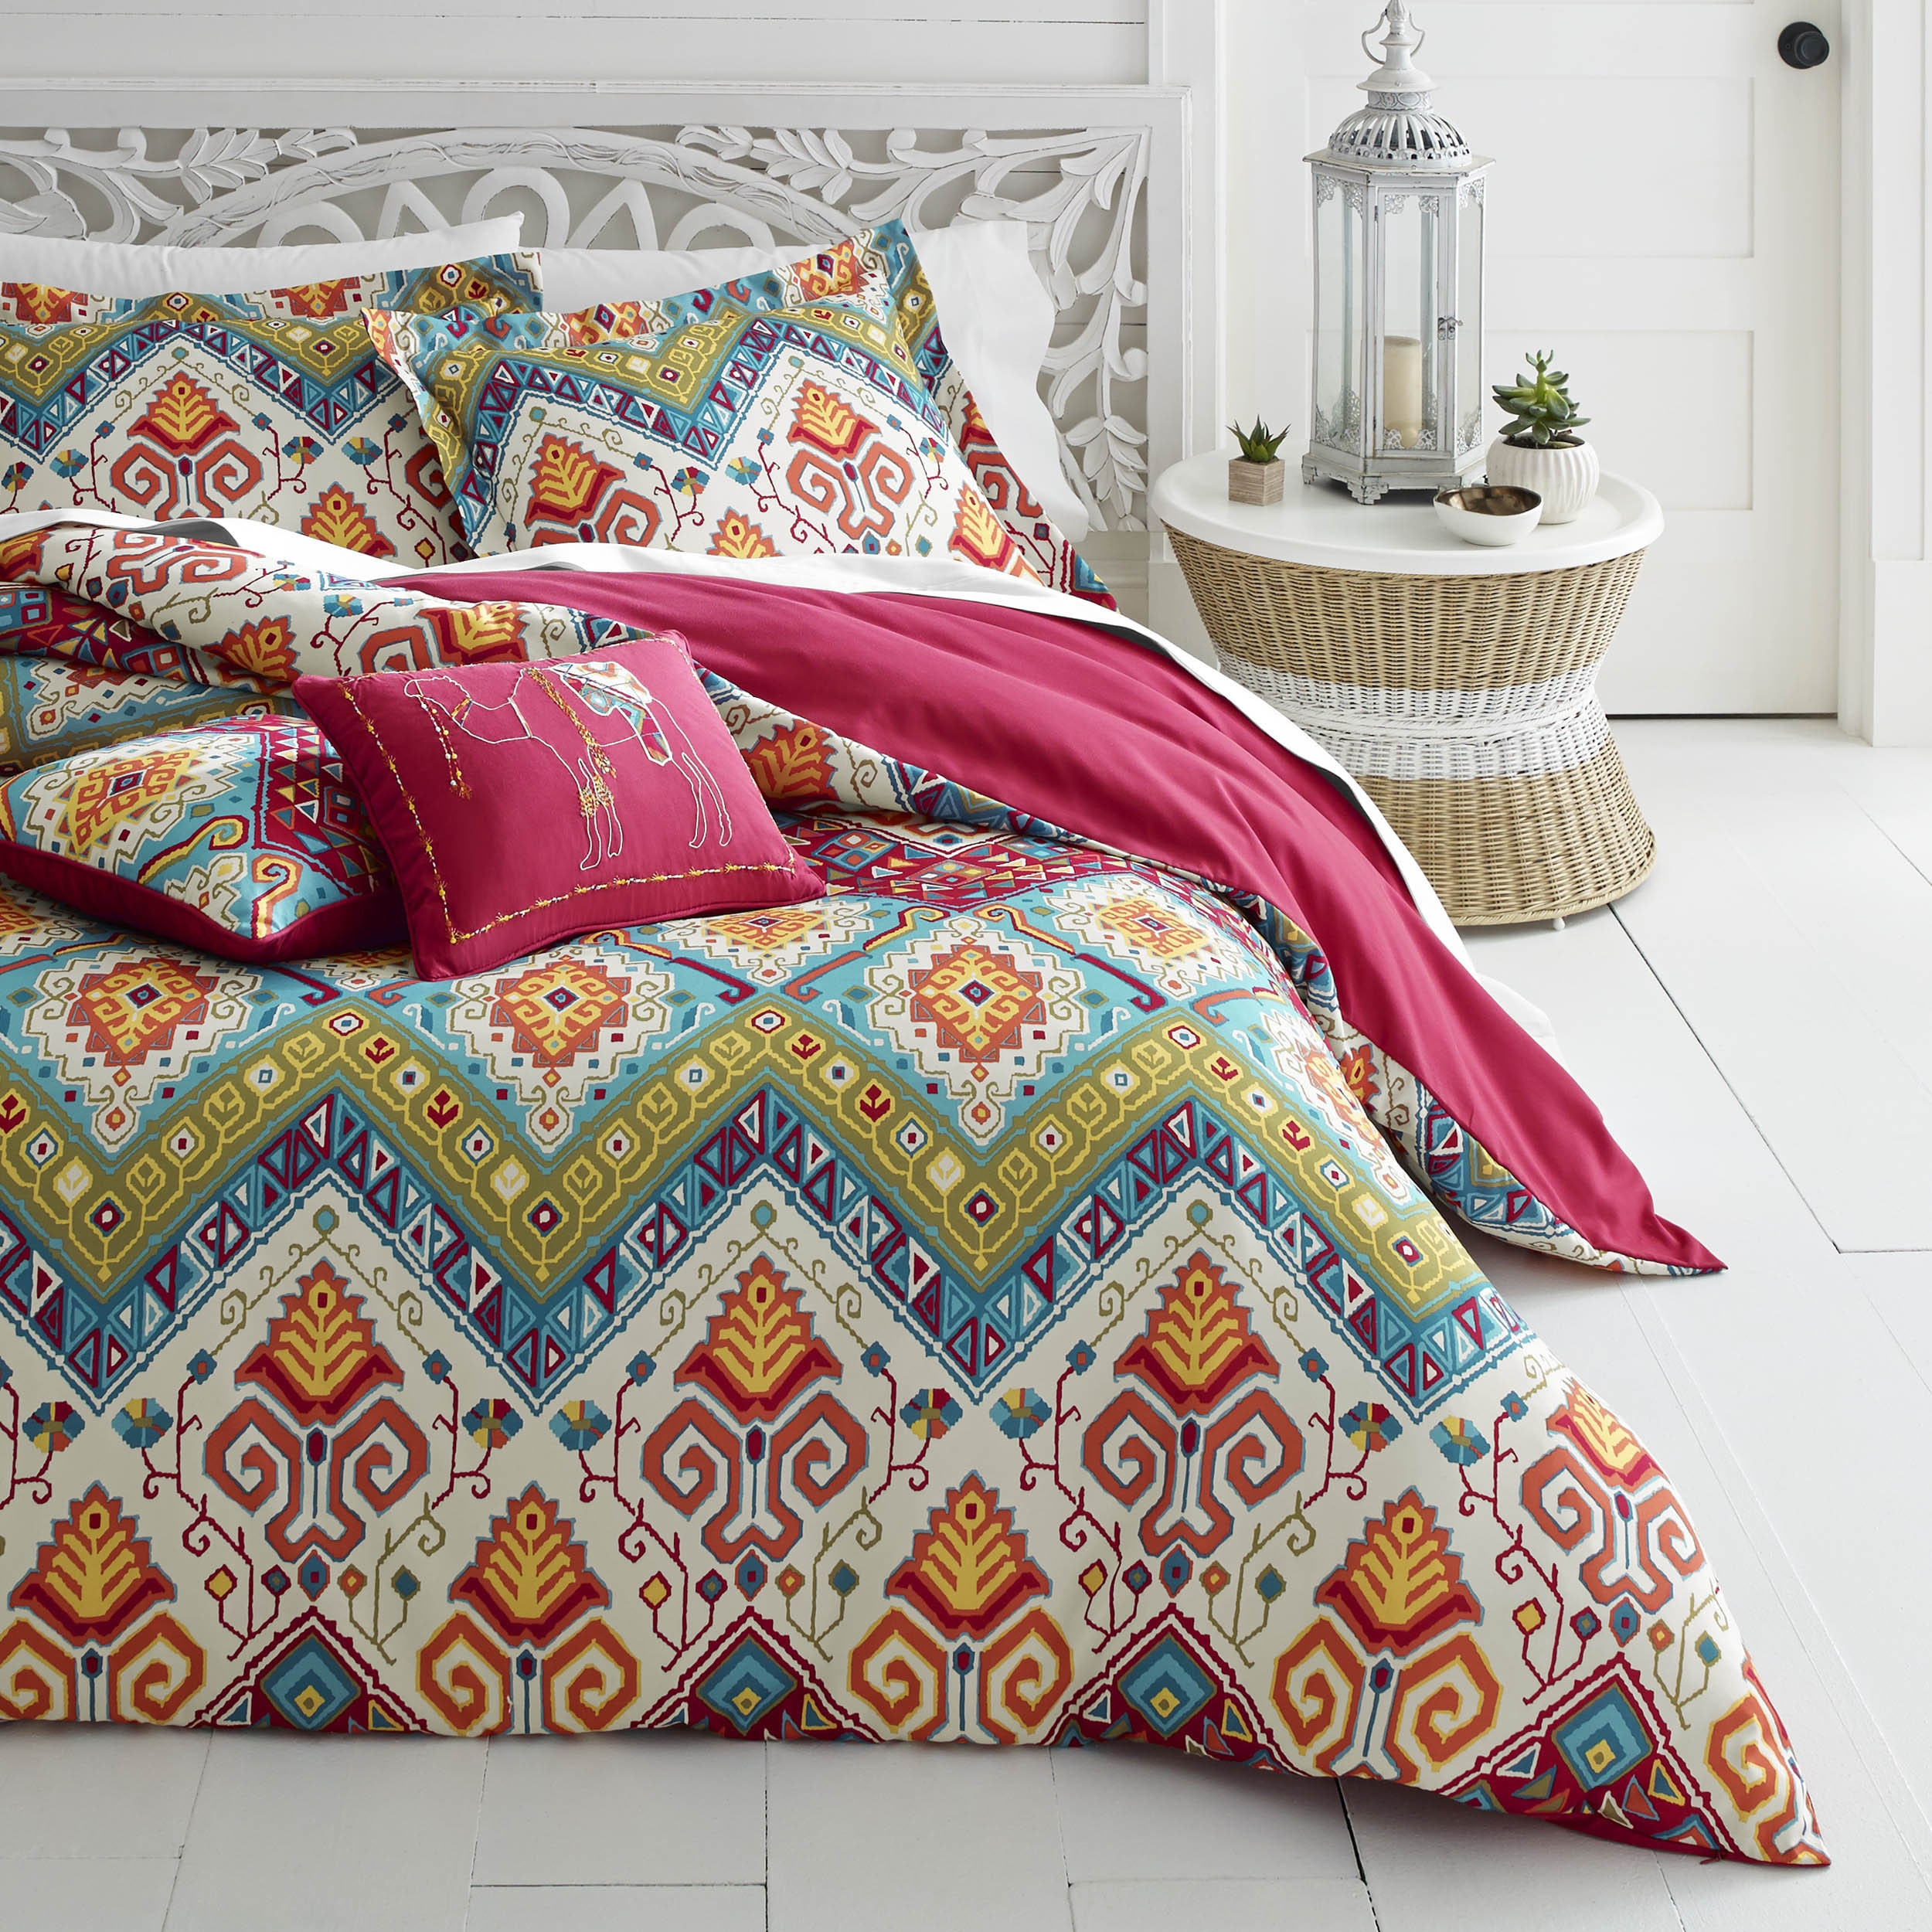 on over nights skye orders bedding product duvet overstock moroccan free shipping azalea cover bath set